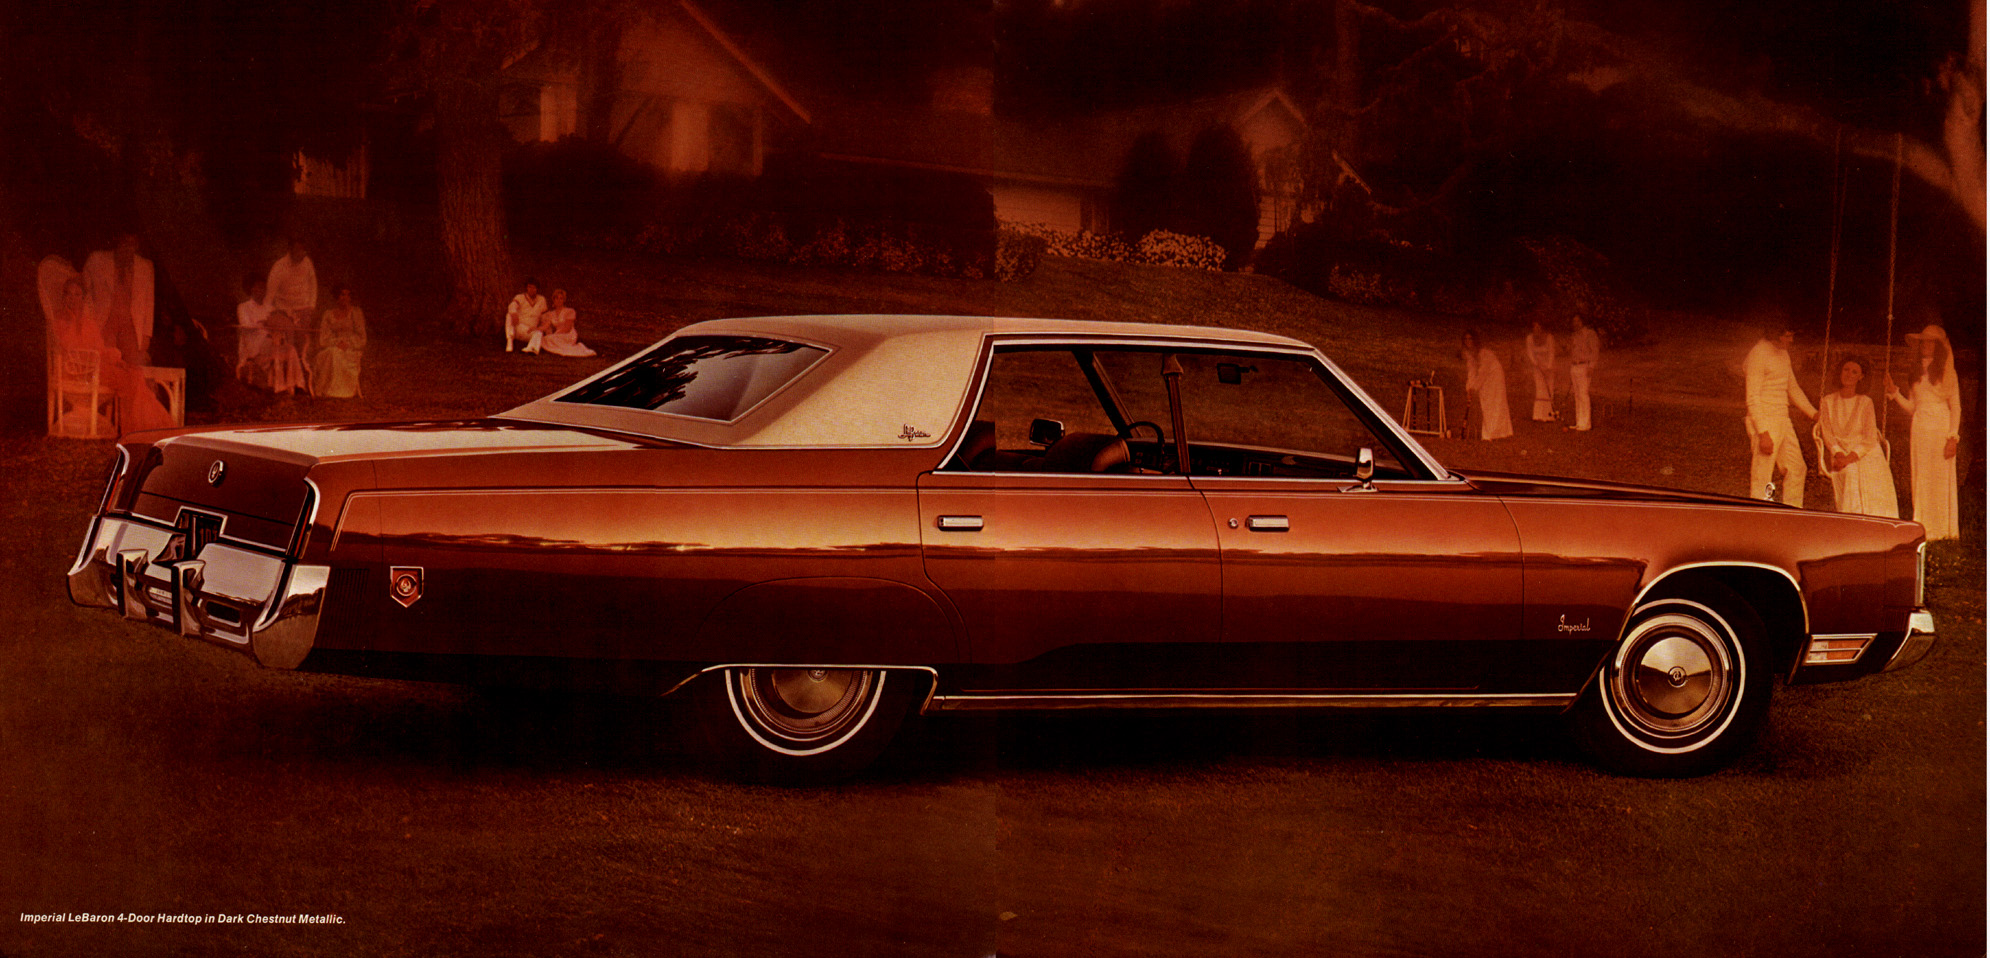 By 1974, Chrysler was back to